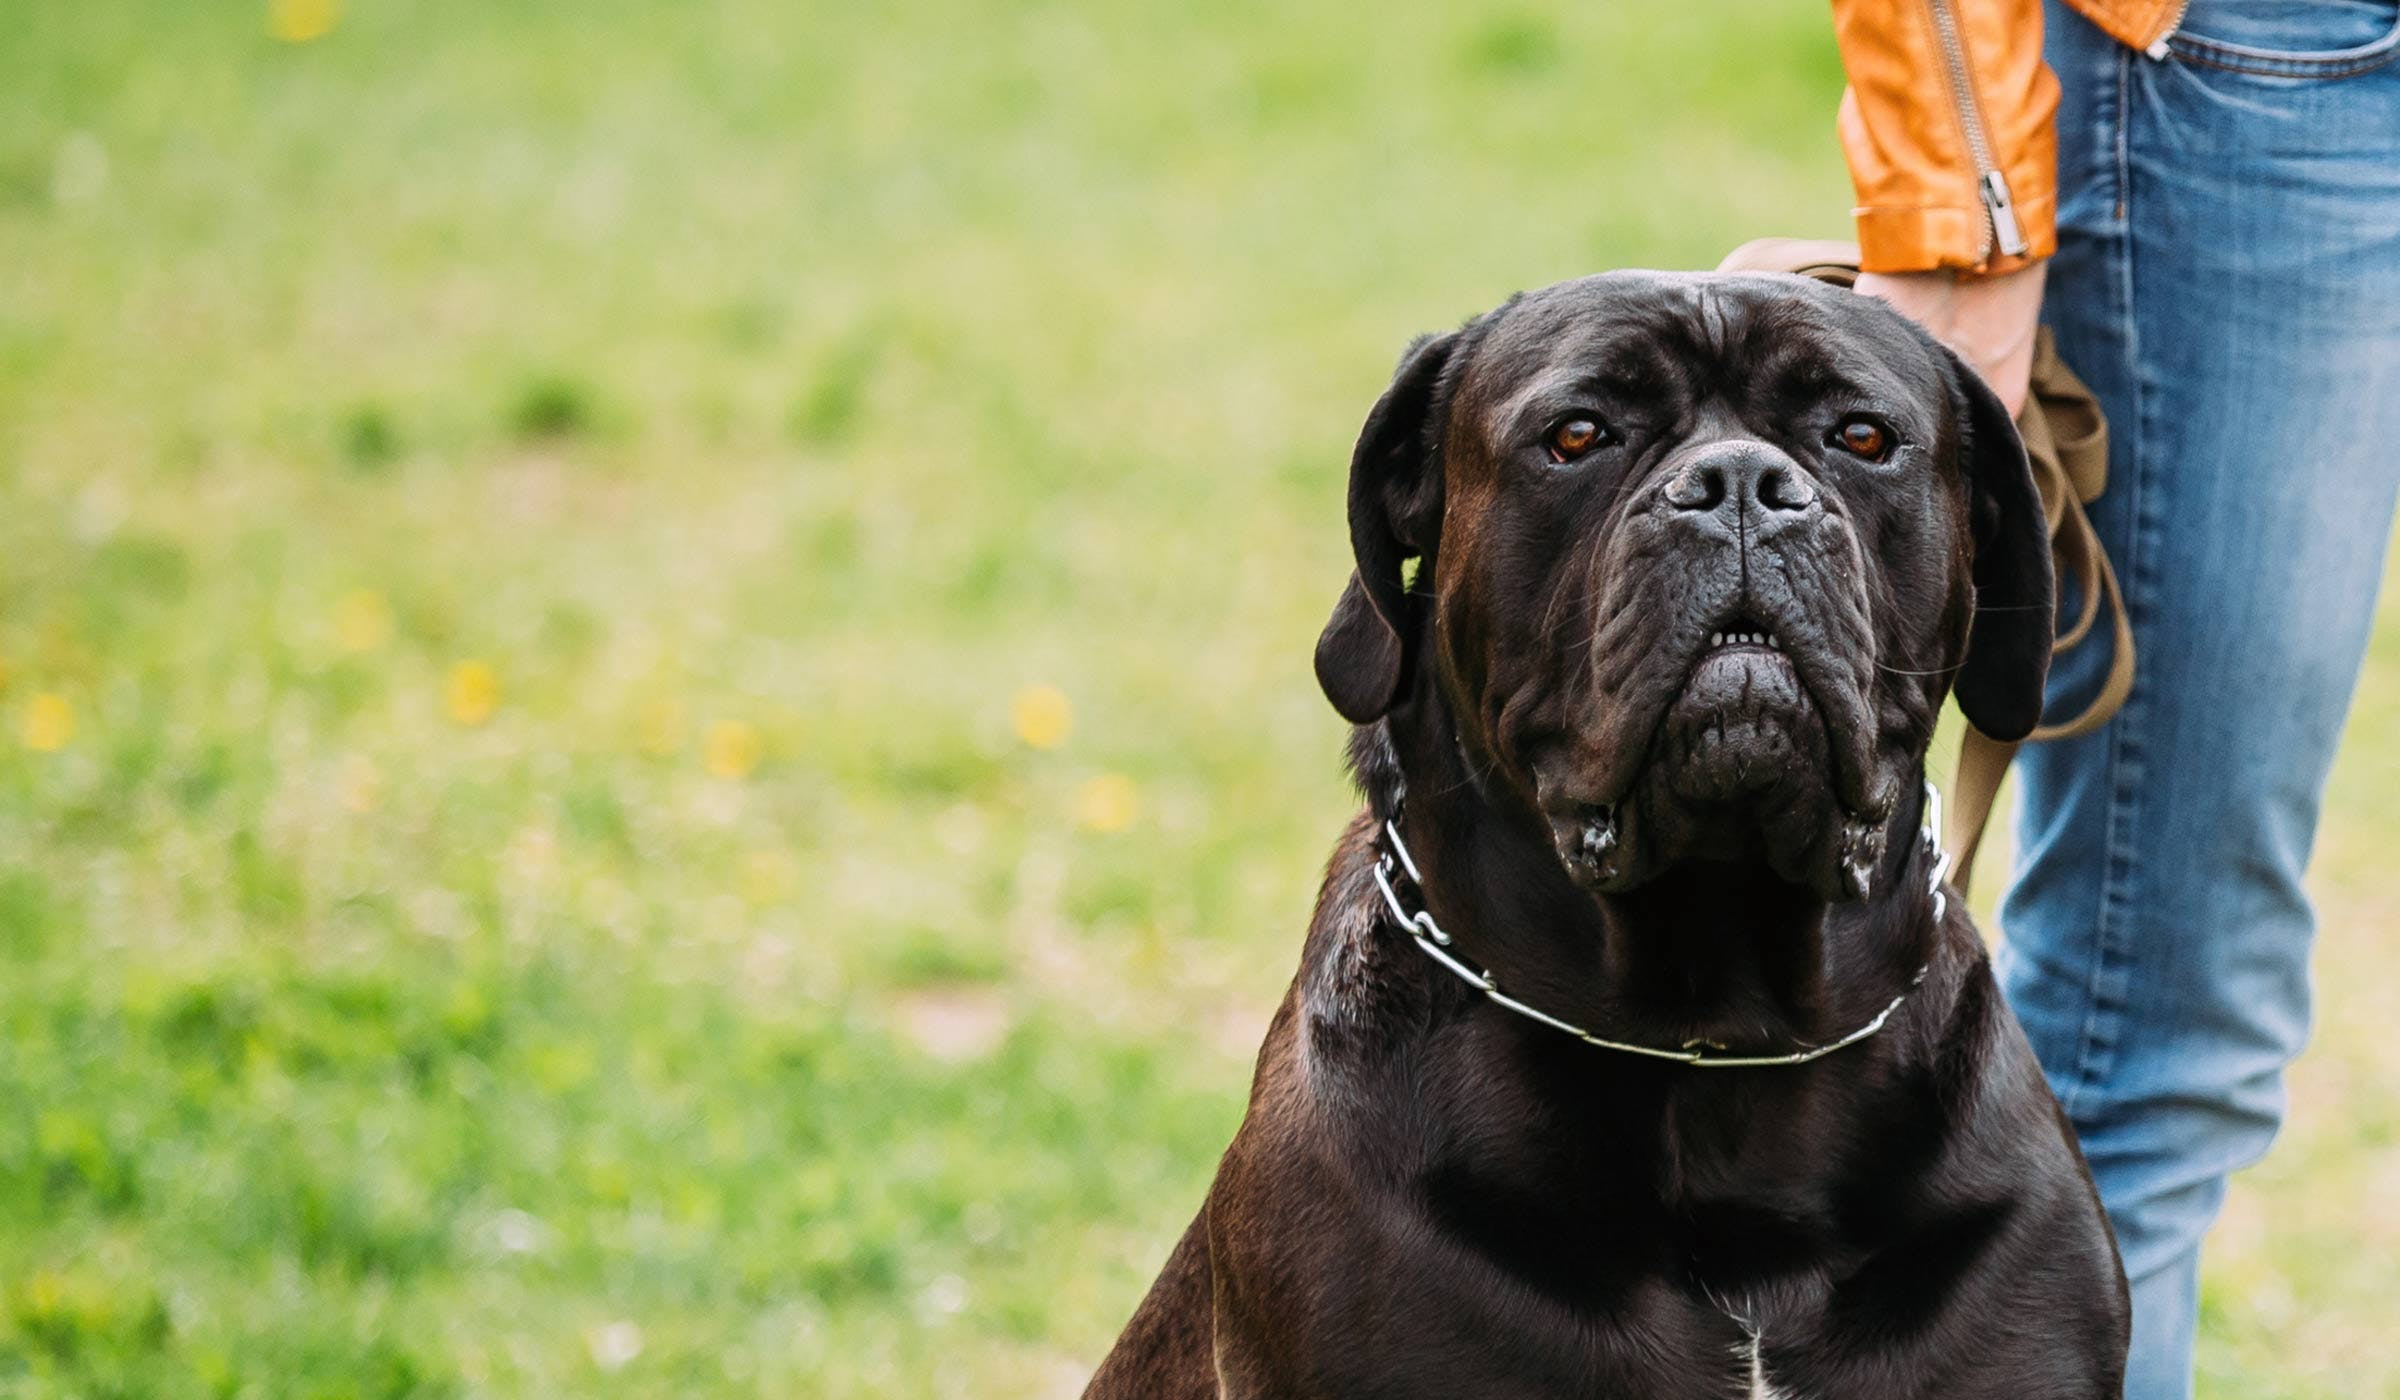 How To Train Your Cane Corso Dog To Be A Guard Dog